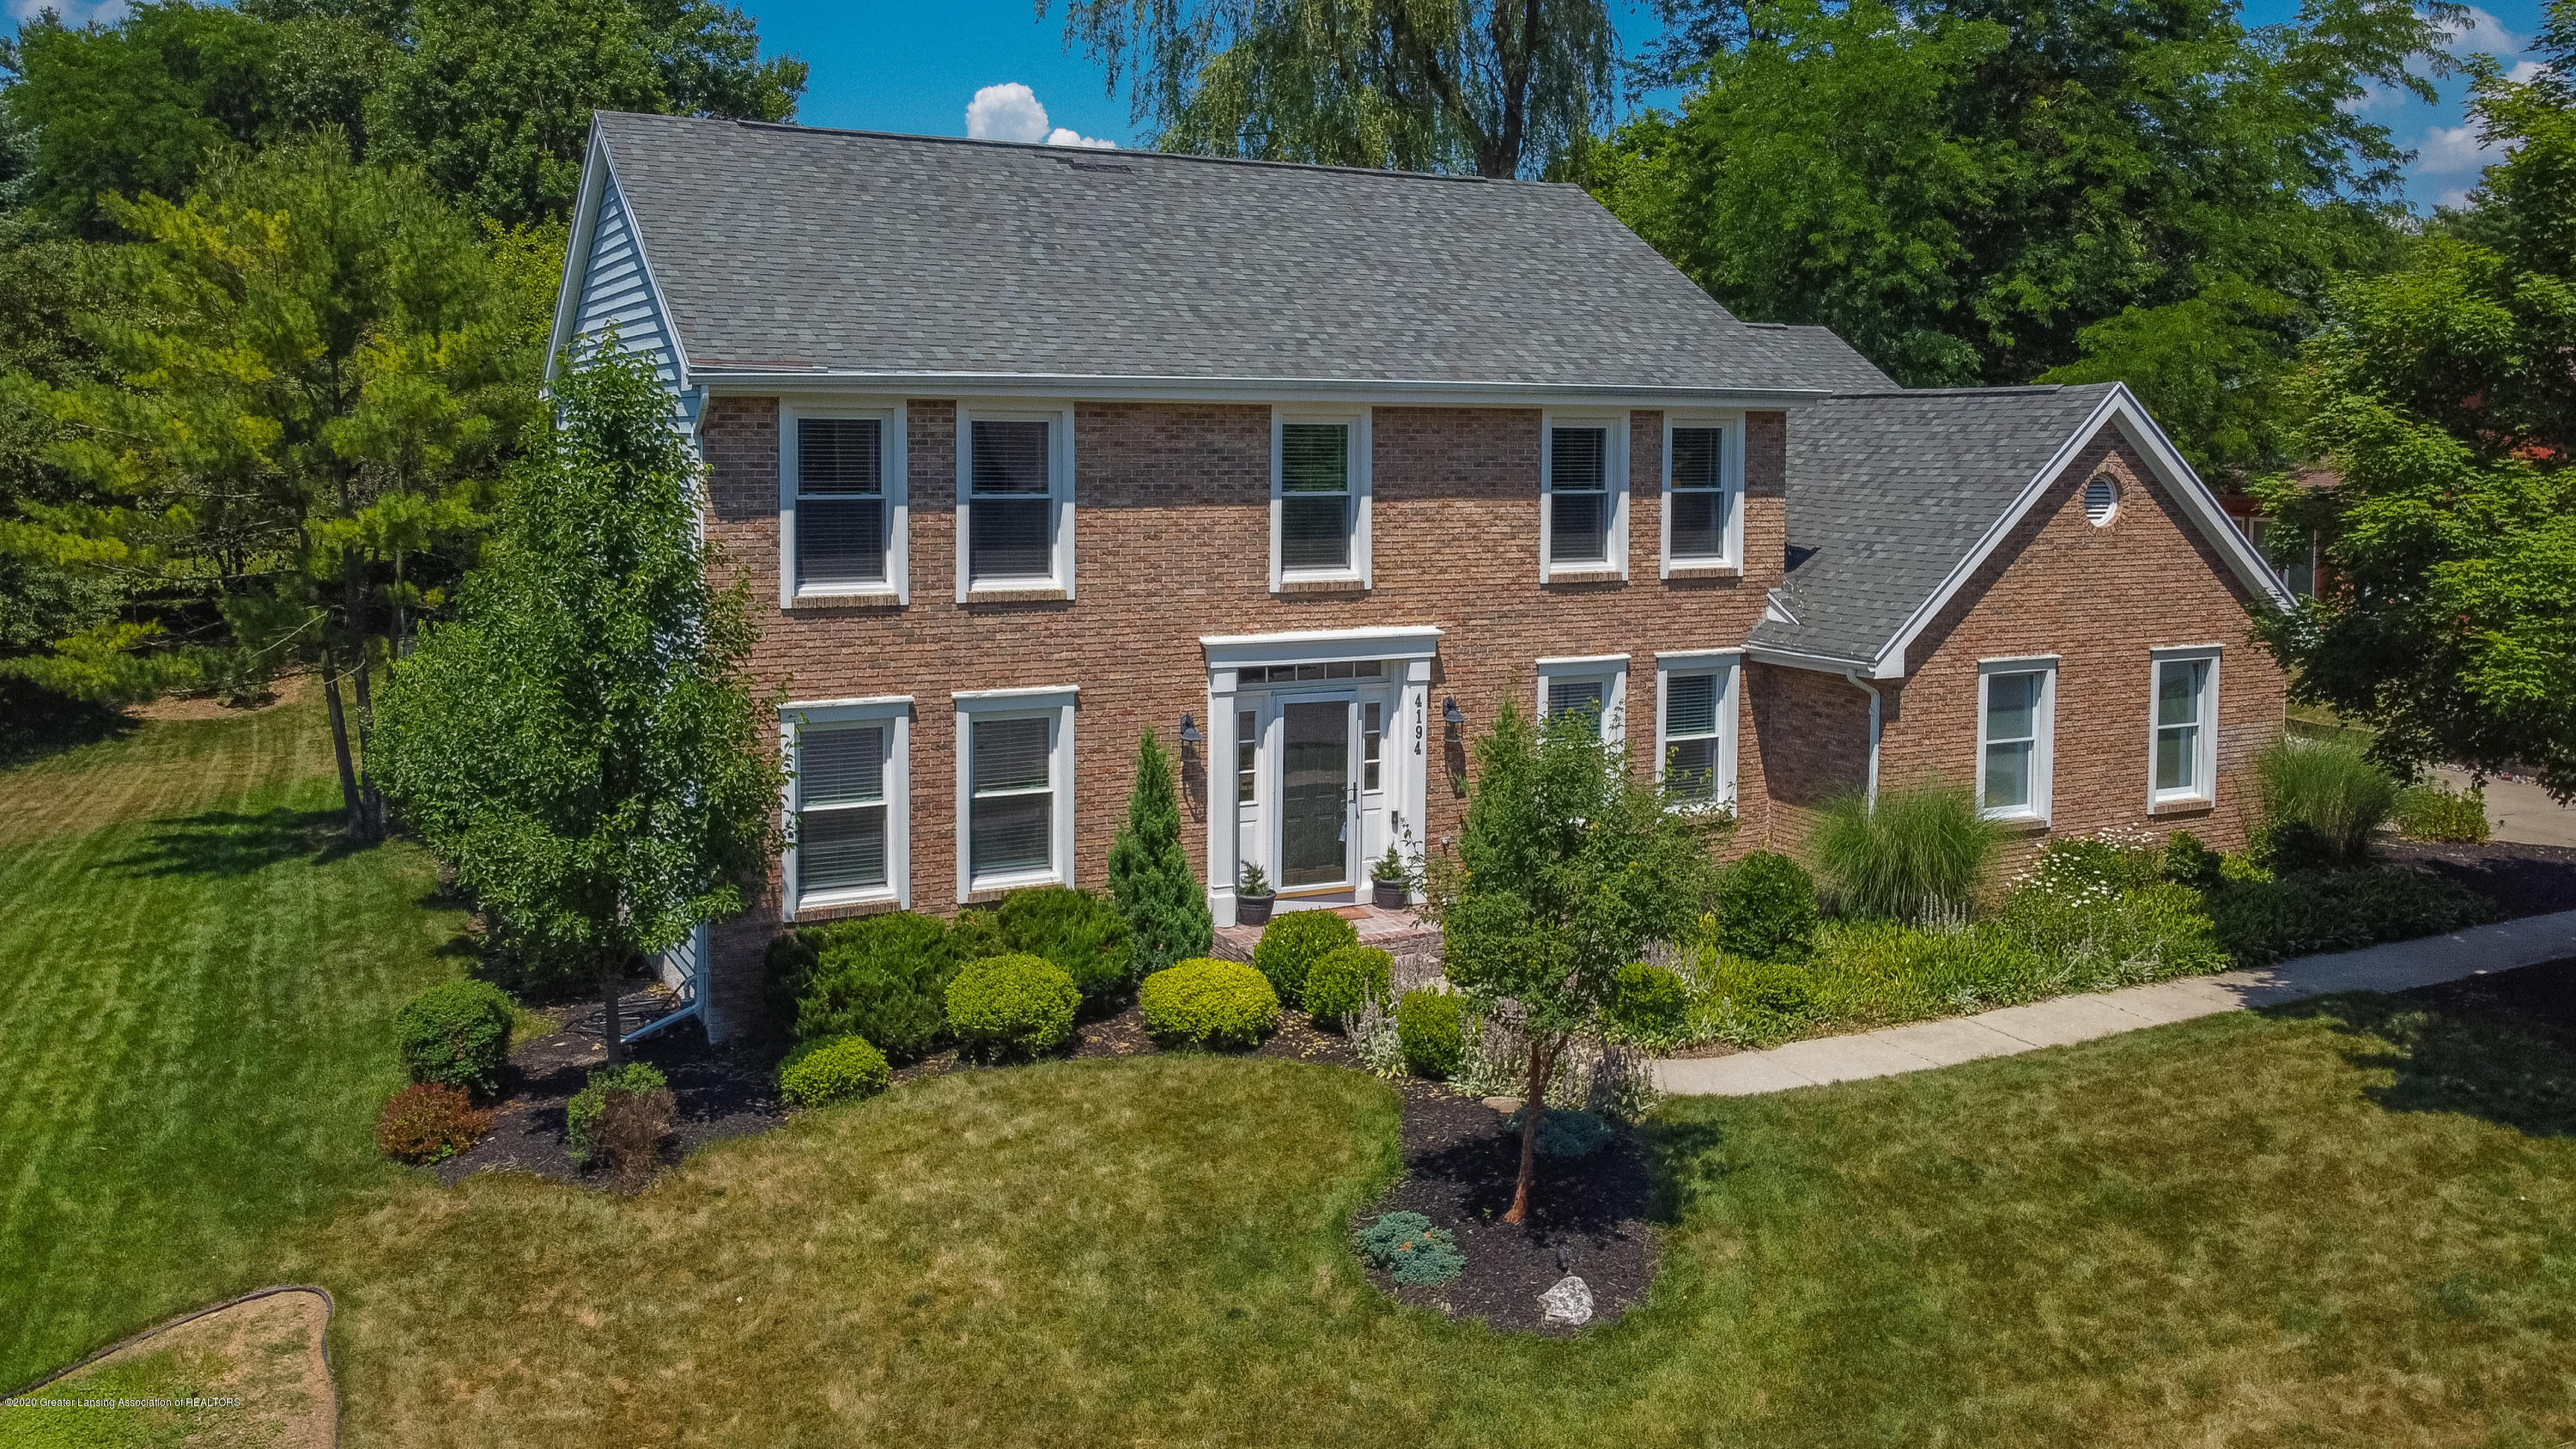 4194 Indian Glen Dr - Aerial View - 48